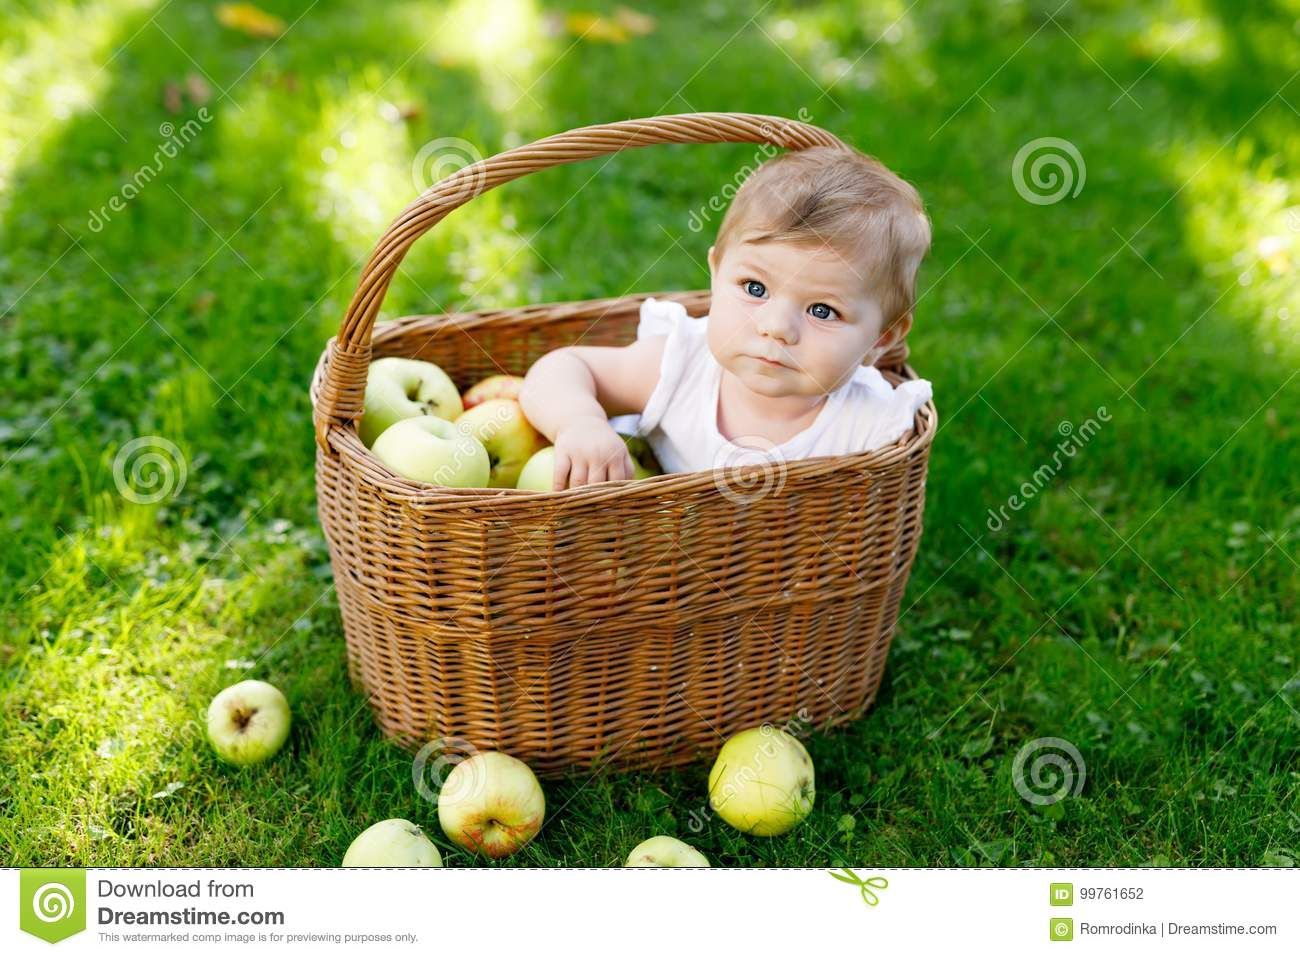 33c430df9 Cute Baby Girl Sitting In Basket Full With Ripe Apples On A Farm In ...